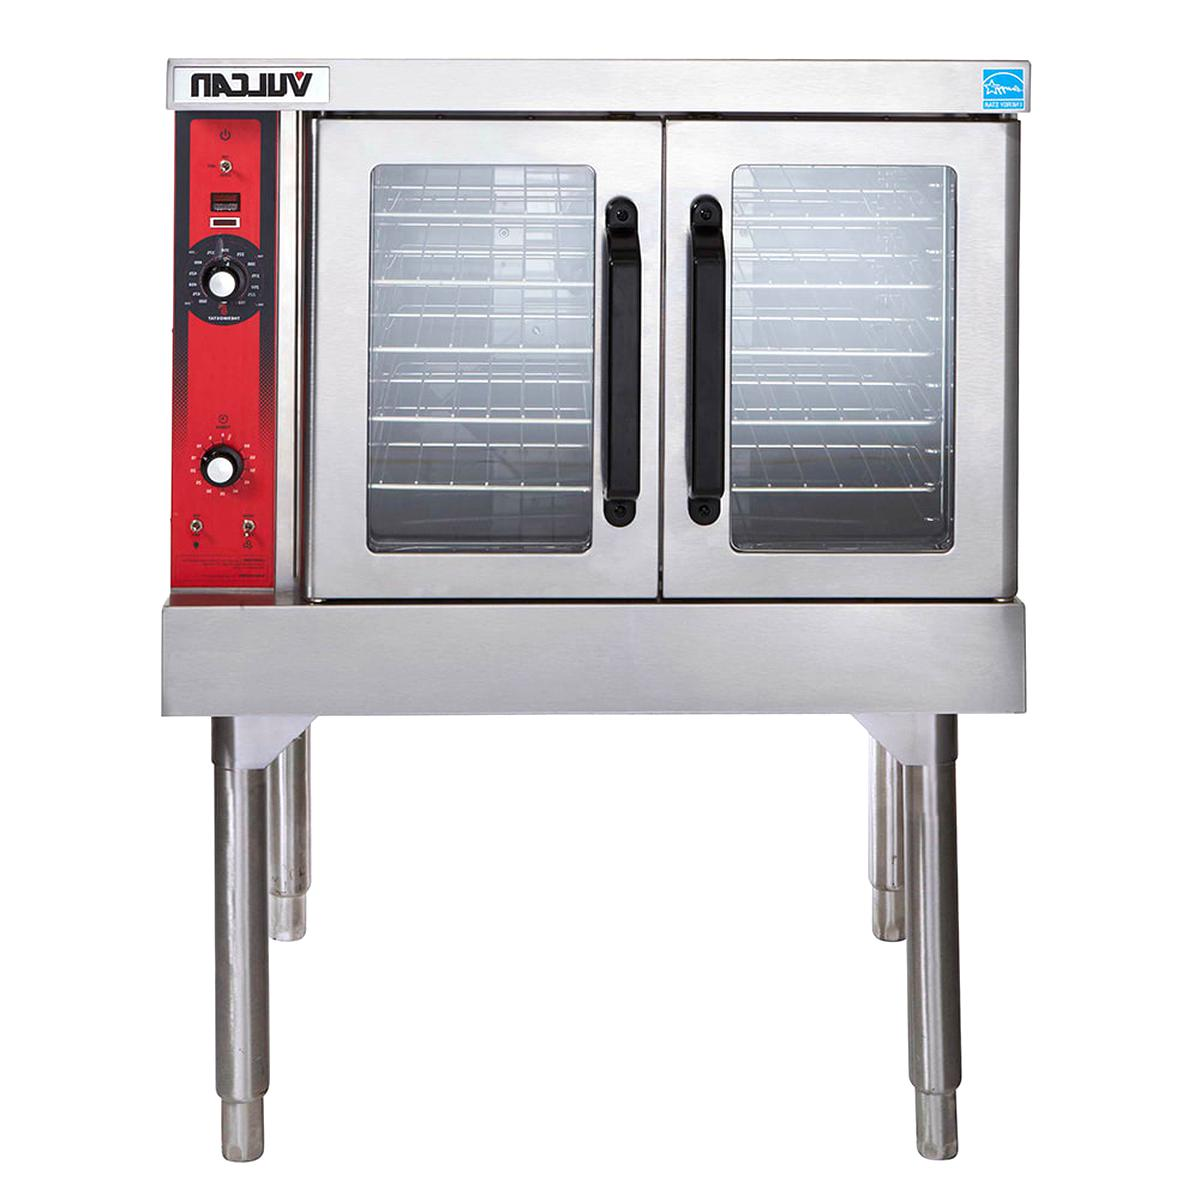 vulcan ovens for sale